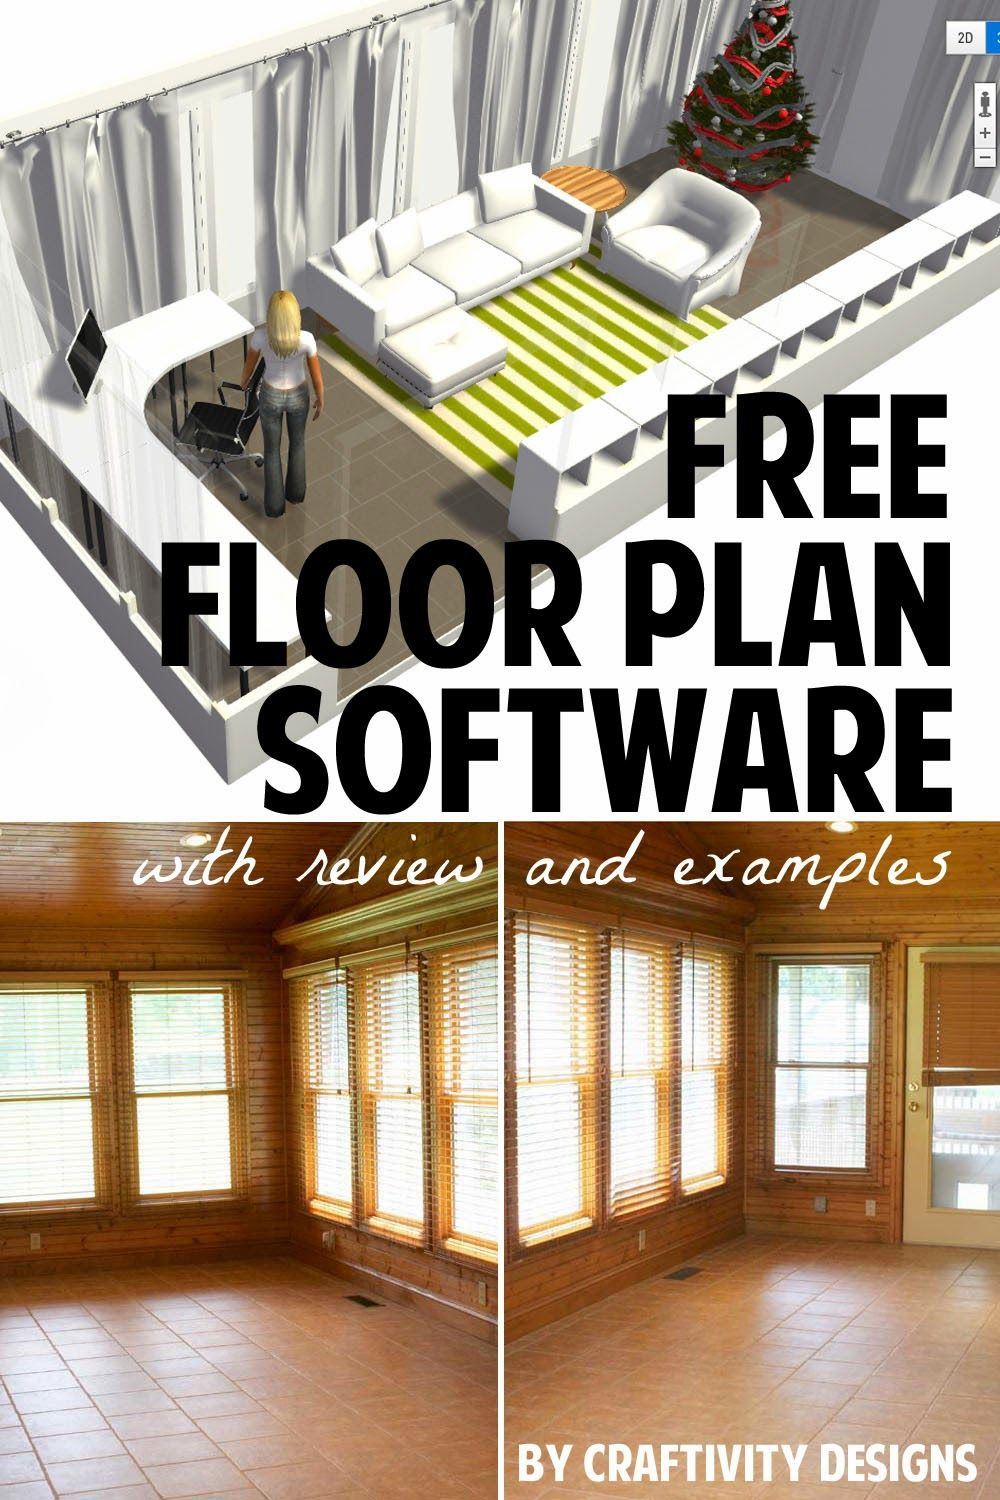 House Building Plans software Free New Quick Easy and Free Floor Plan software